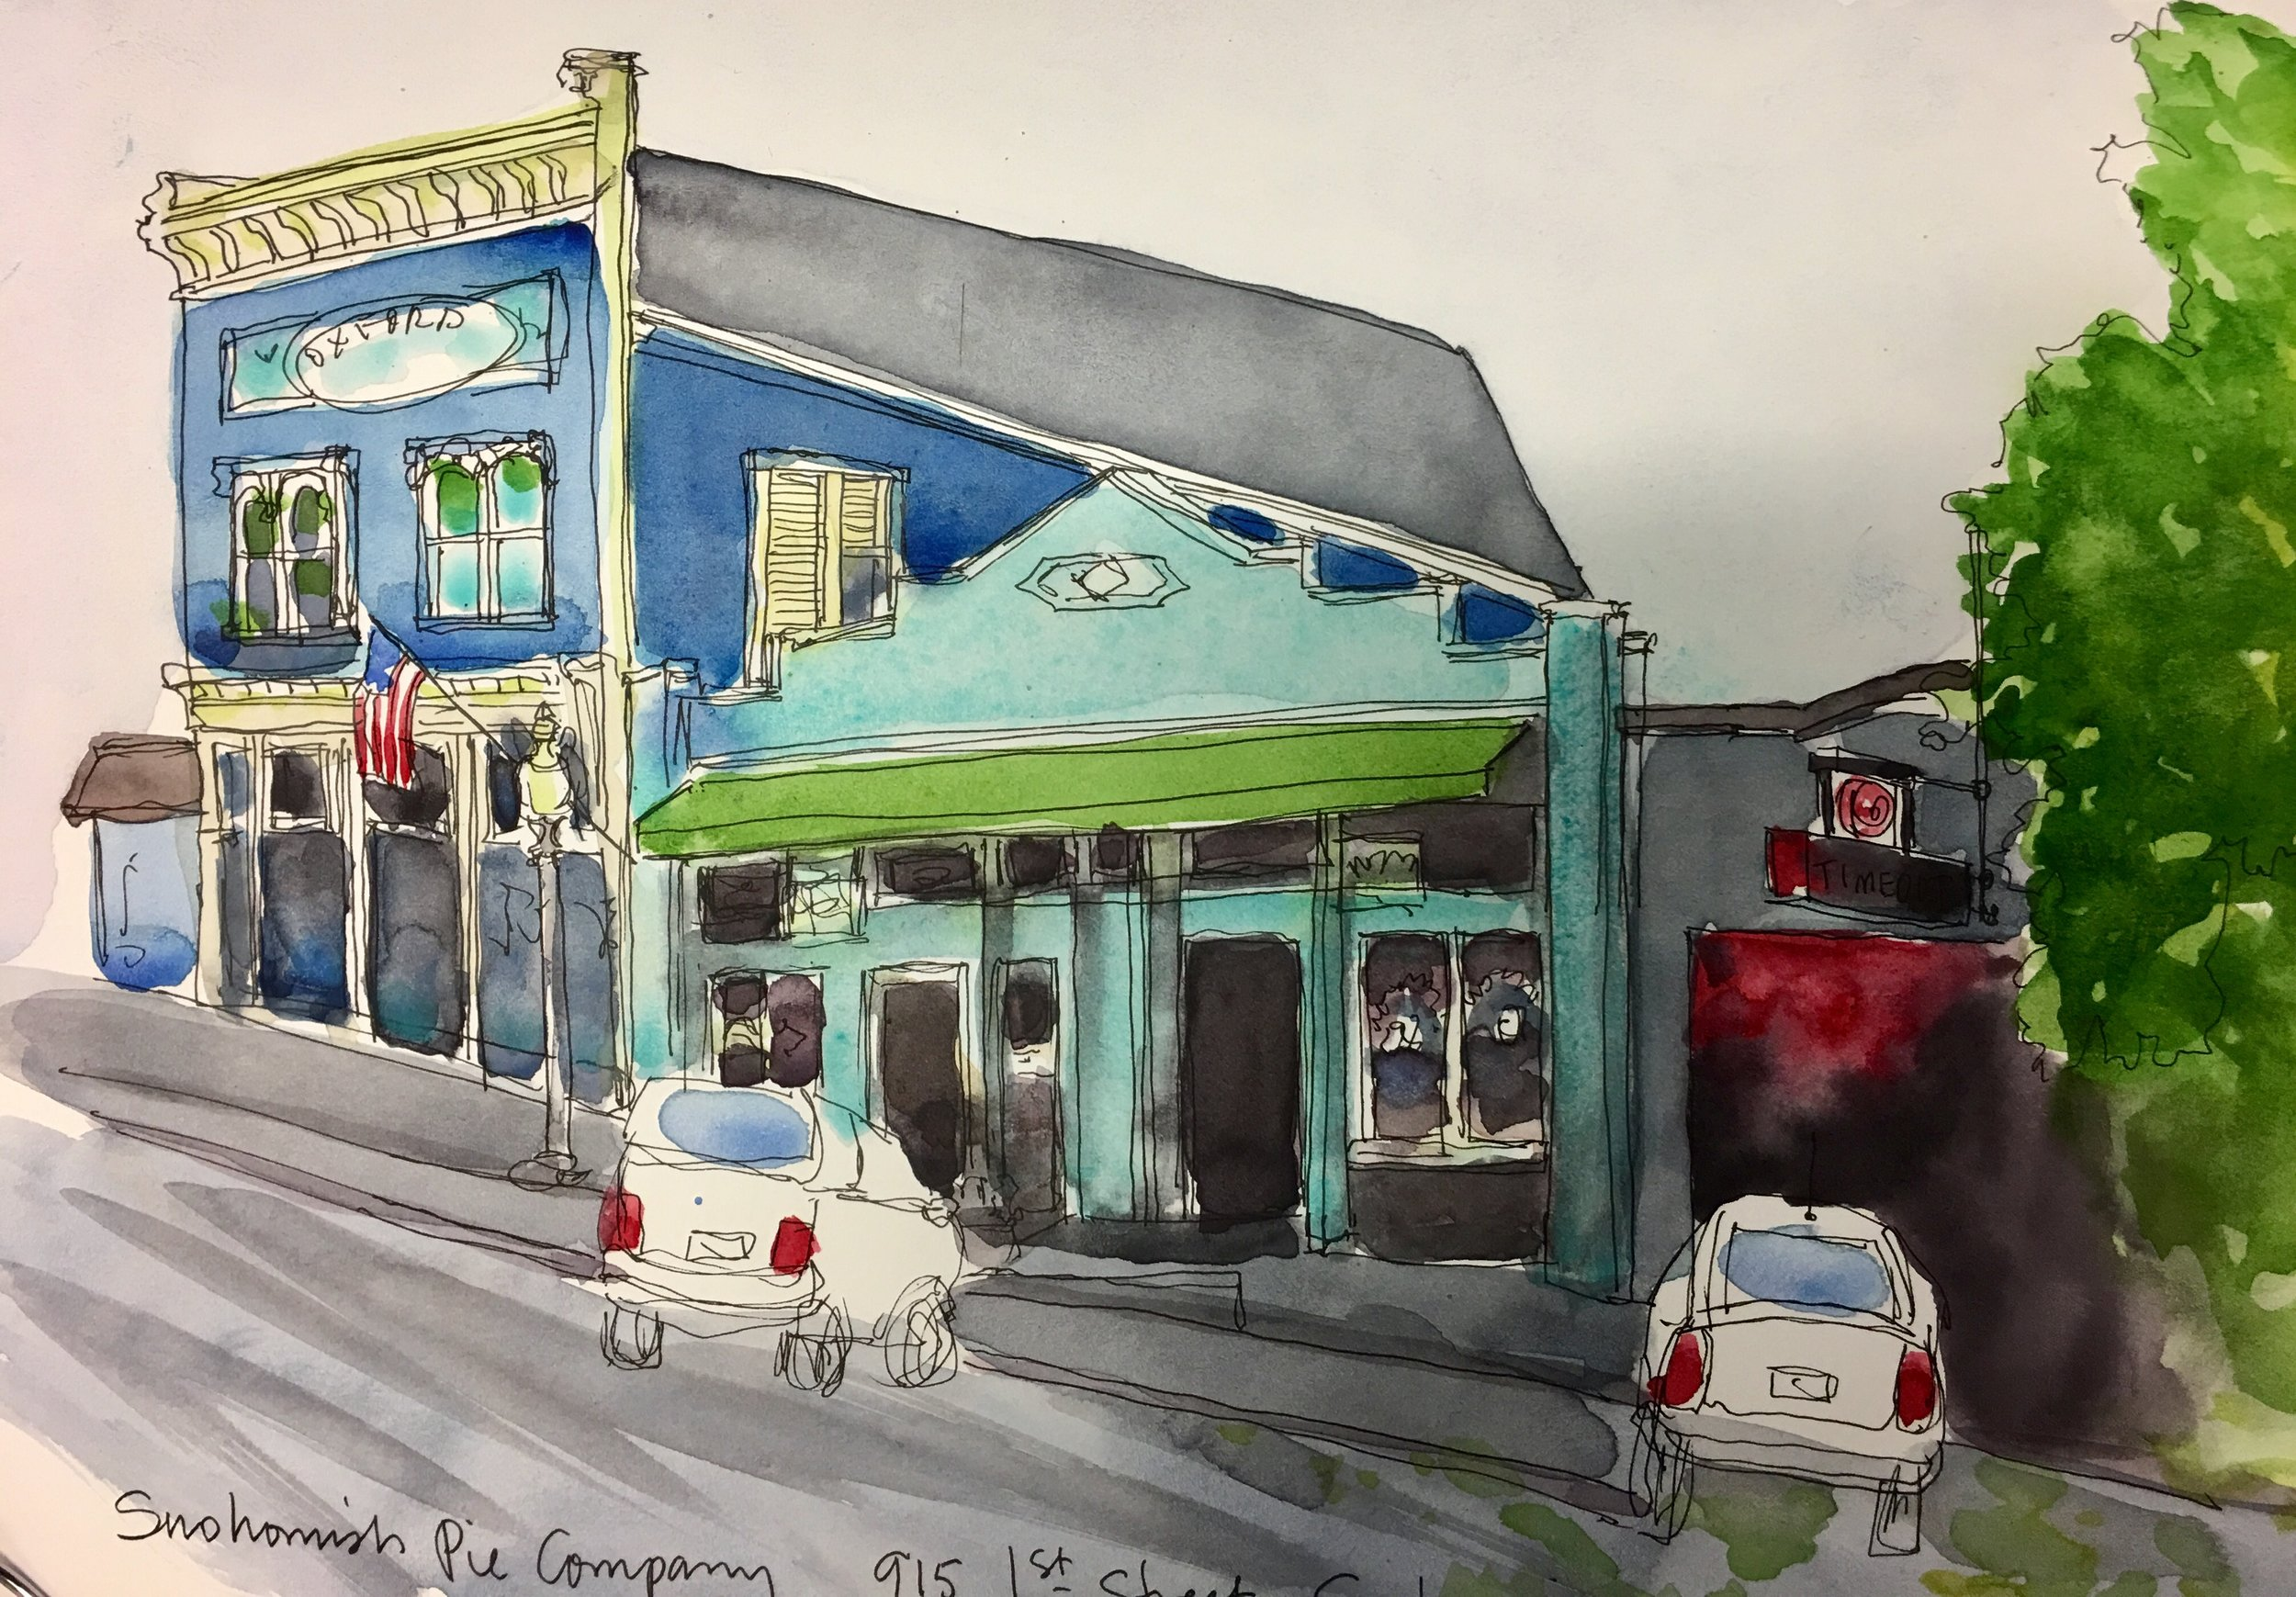 Another one of my sketches of downtown Snohomish